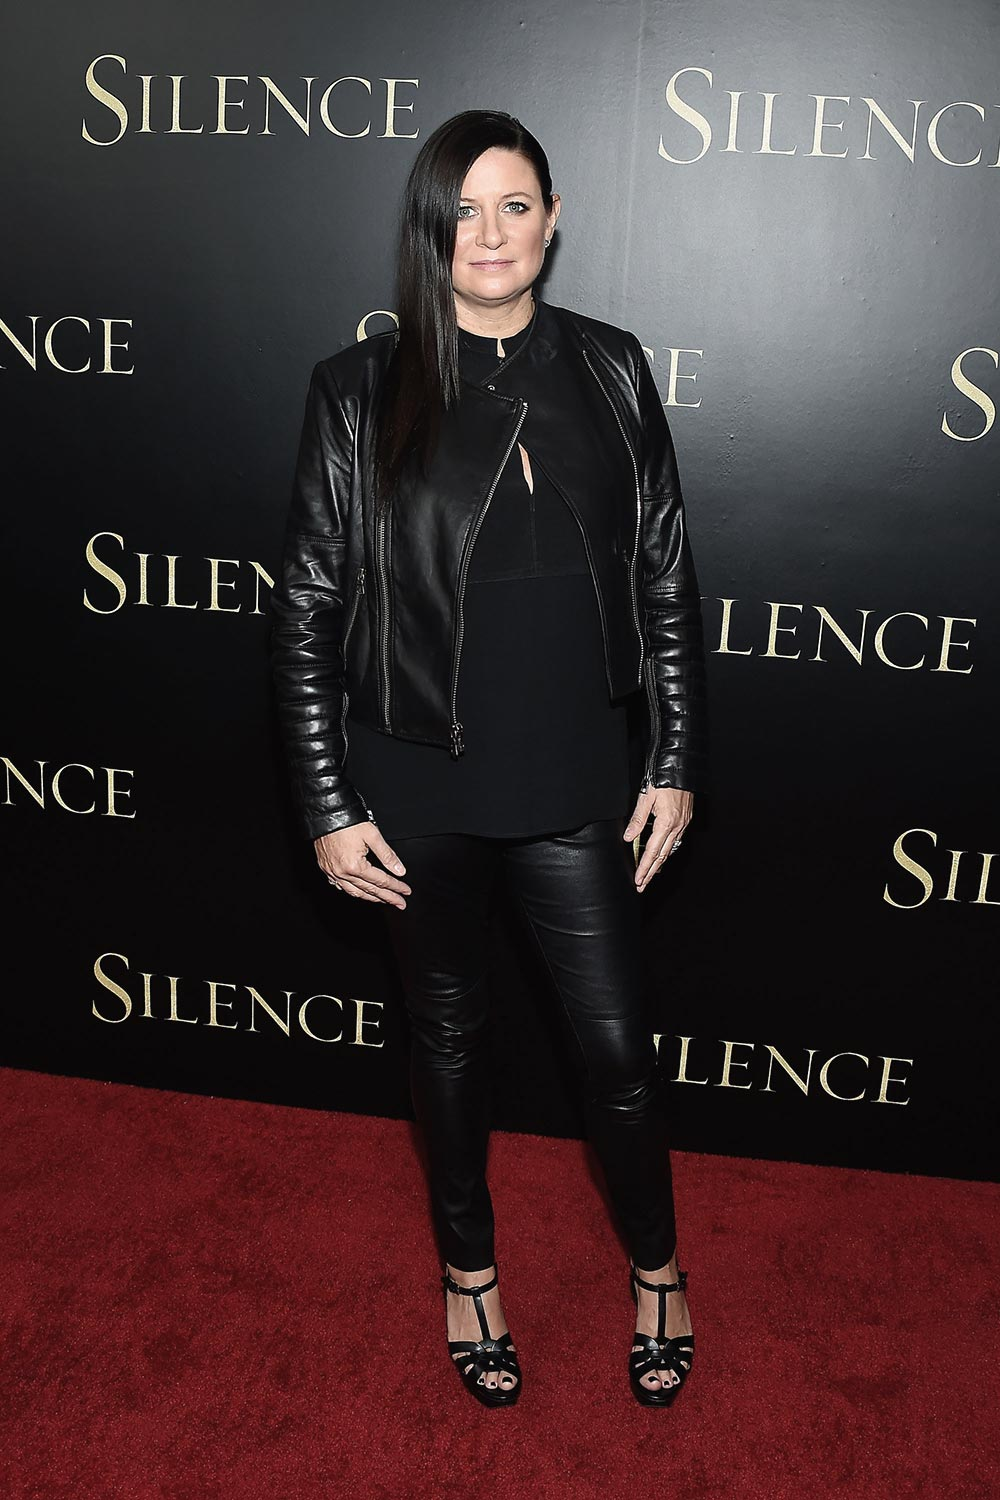 Emma Tillinger Koskoff attends the premiere of Silence